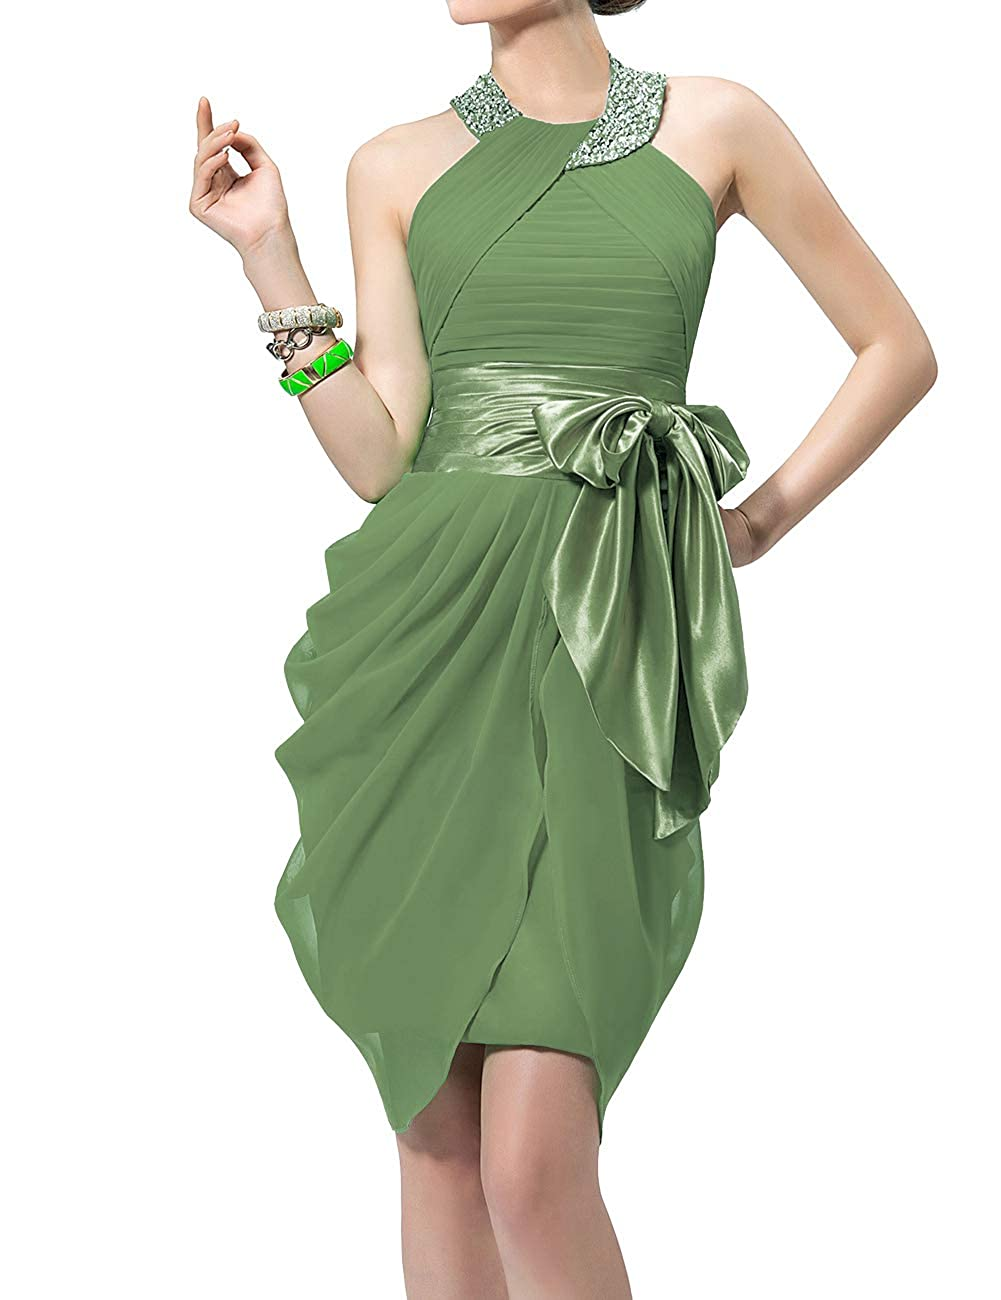 Pastel green Uther Halter Cocktail Dress Short Formal Party Gowns Beaded Pleats Bridesmaid Dresses